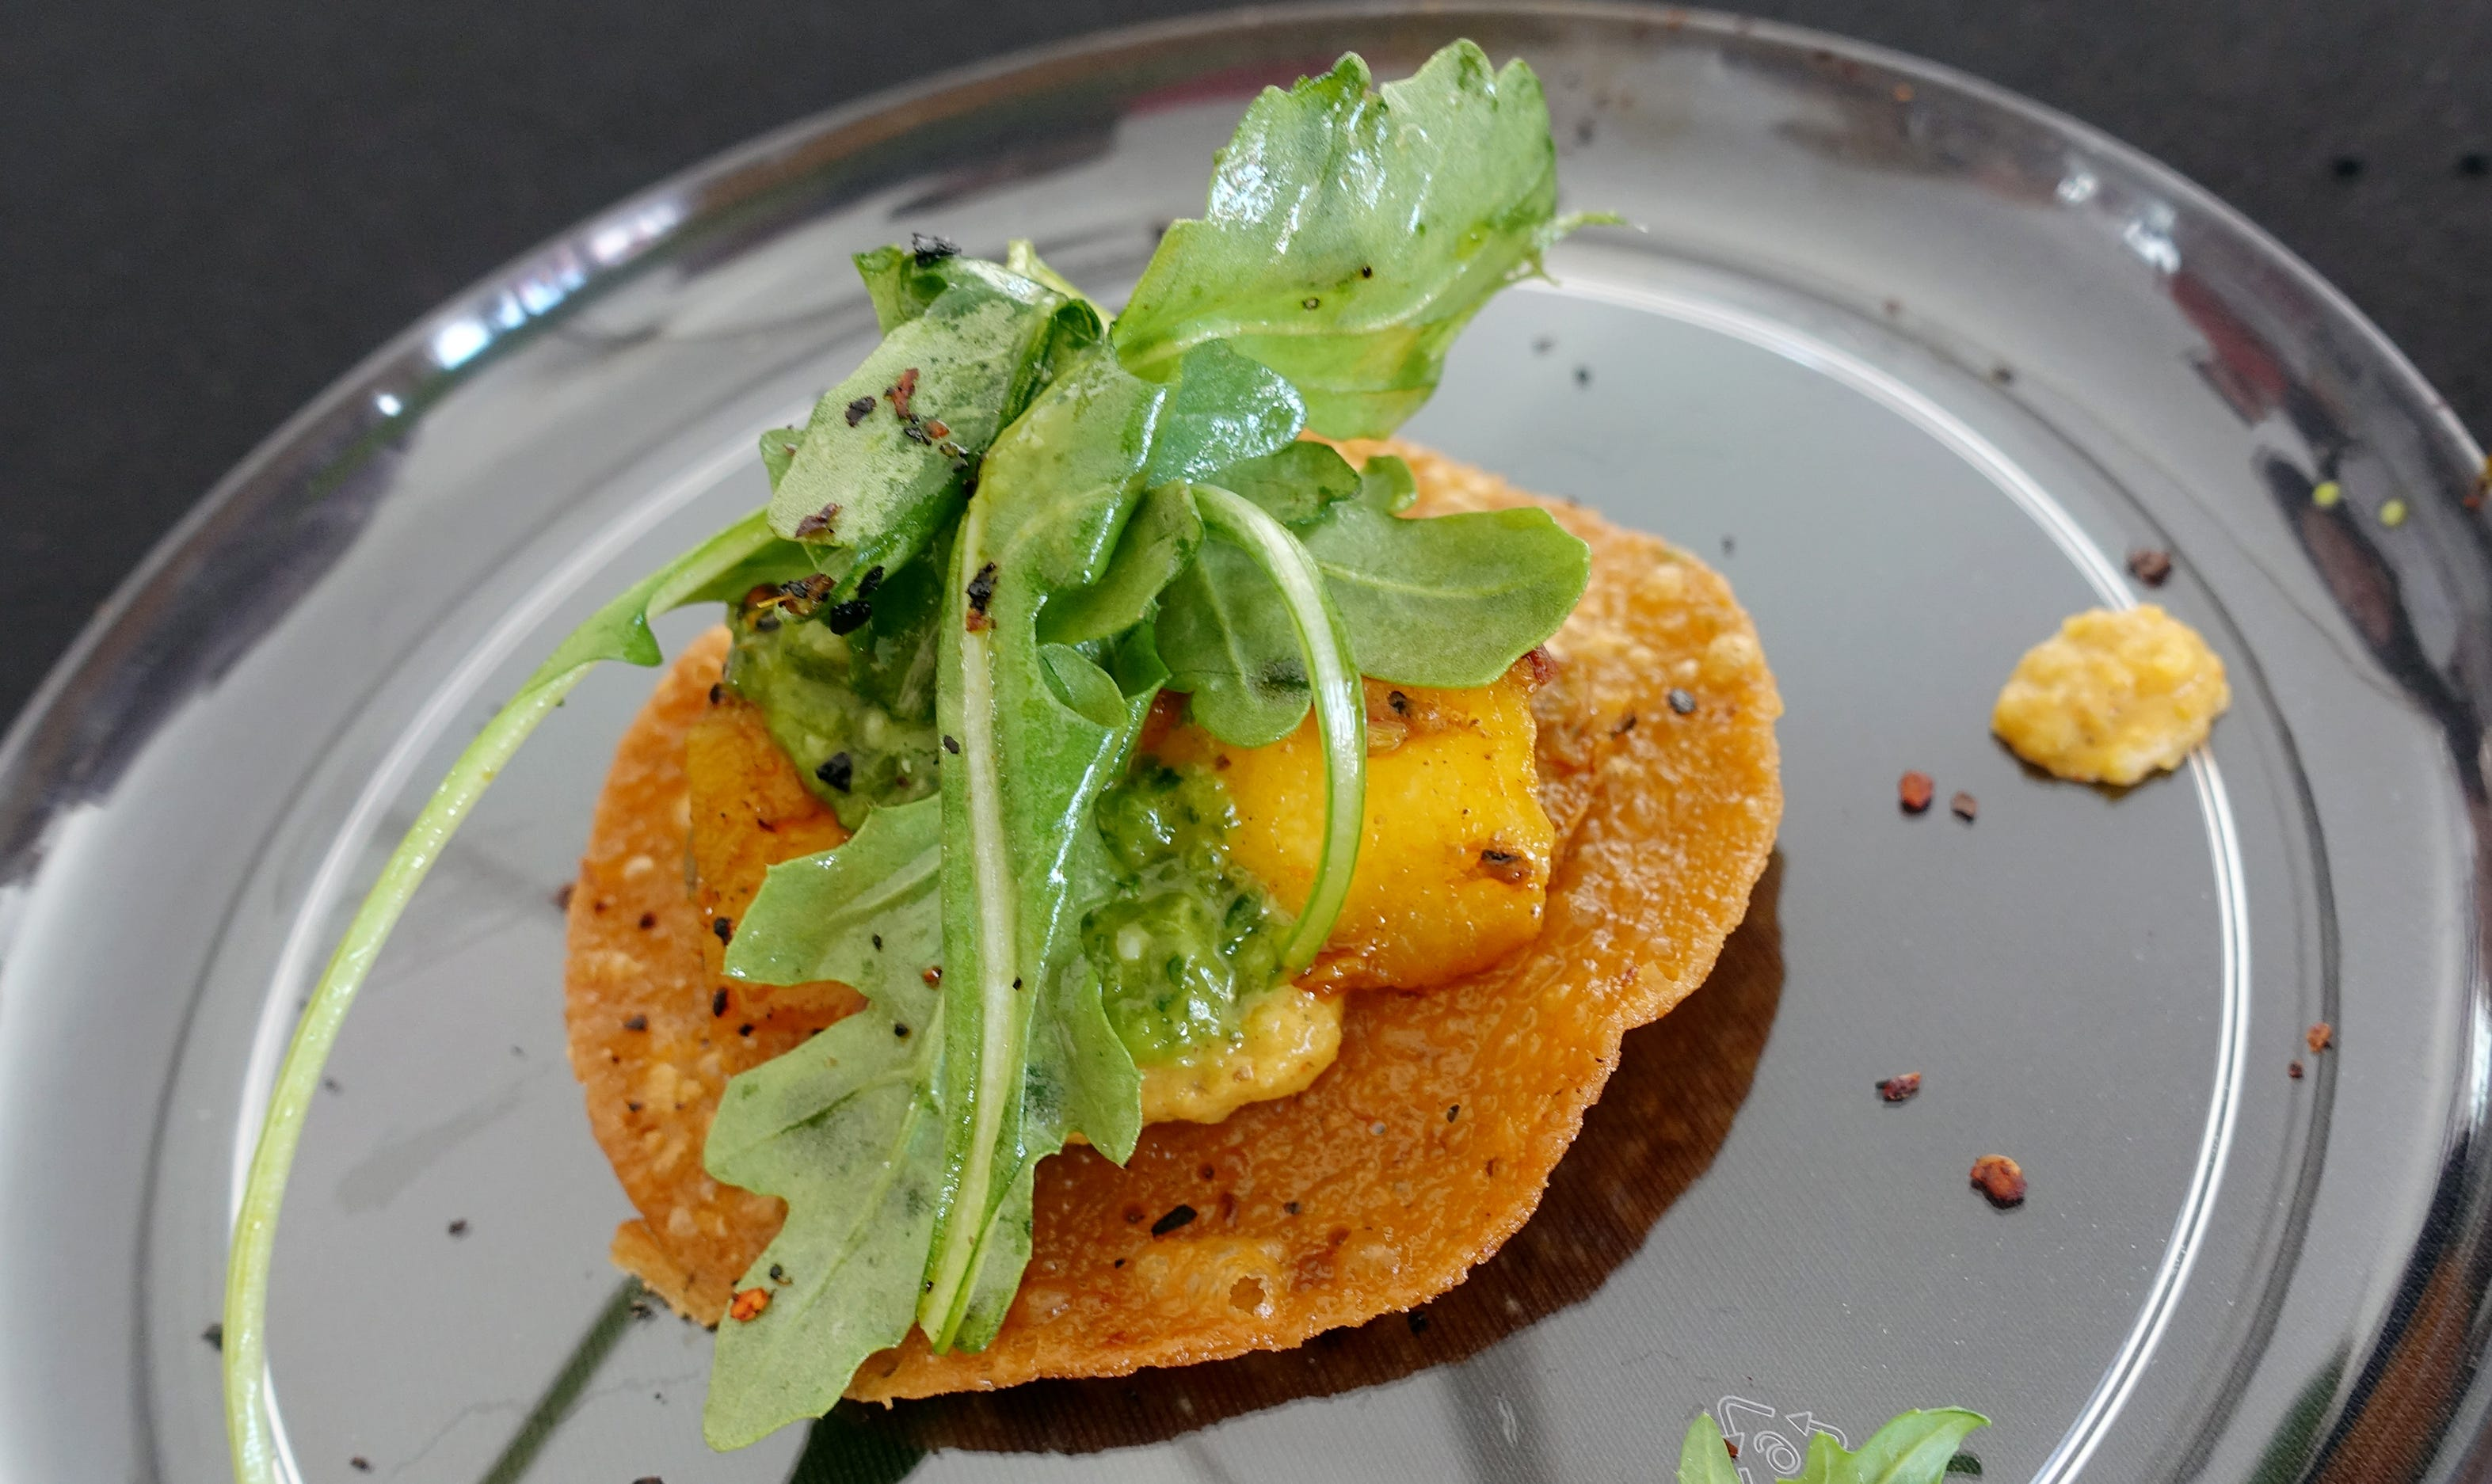 """Hatch chile """"crepe-stada"""" with barbecued acorn squash, Somali spiced creamed butternut, arugula and pesto from Crepe Bar at azcentral Wine & Food Experience 2018."""